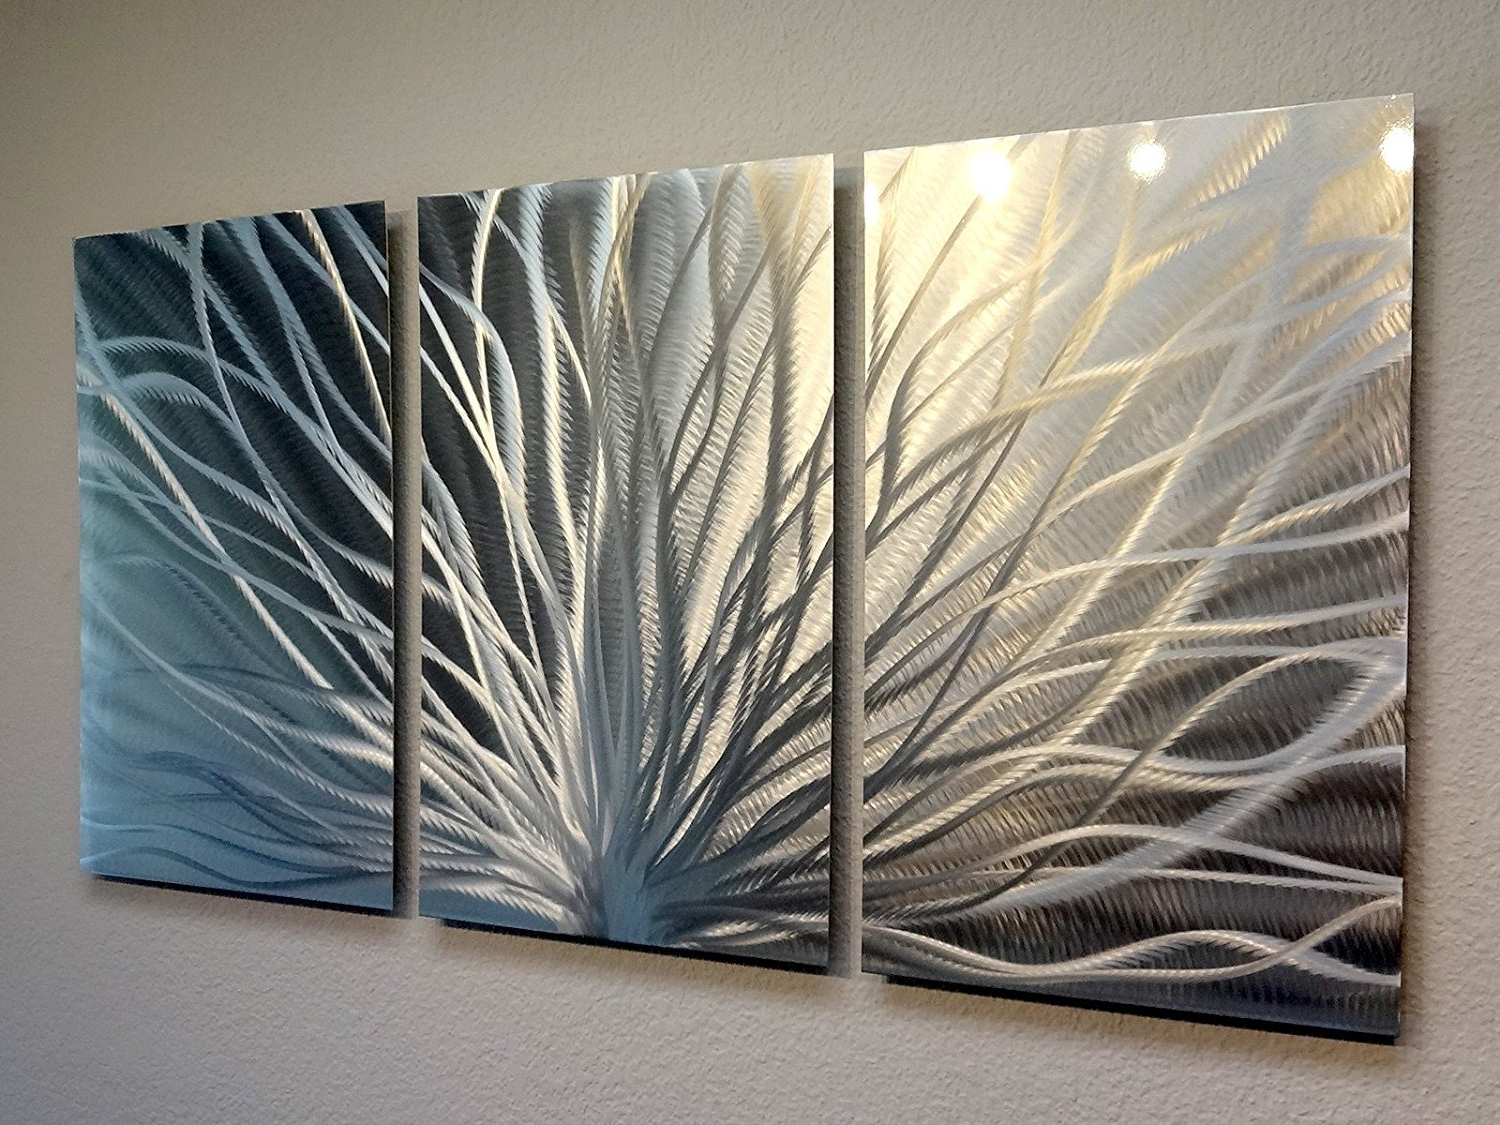 Most Recent Abstract Wall Art In Amazon: Metal Wall Art, Modern Home Decor, Abstract Wall (View 6 of 15)